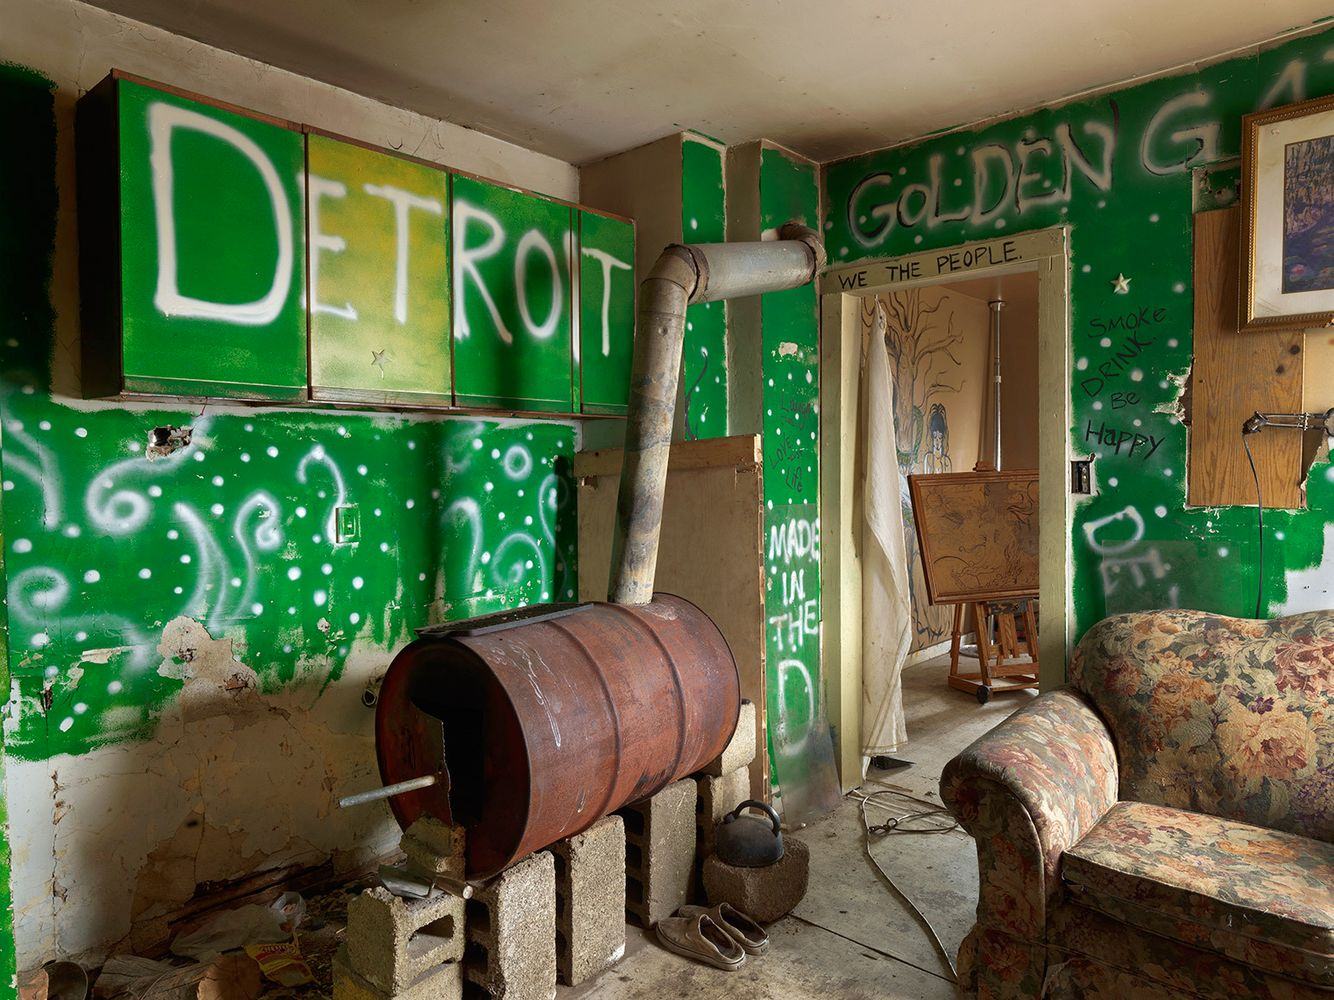 Interior View, Beezy's House, Goldengate Street, Detroit 2013